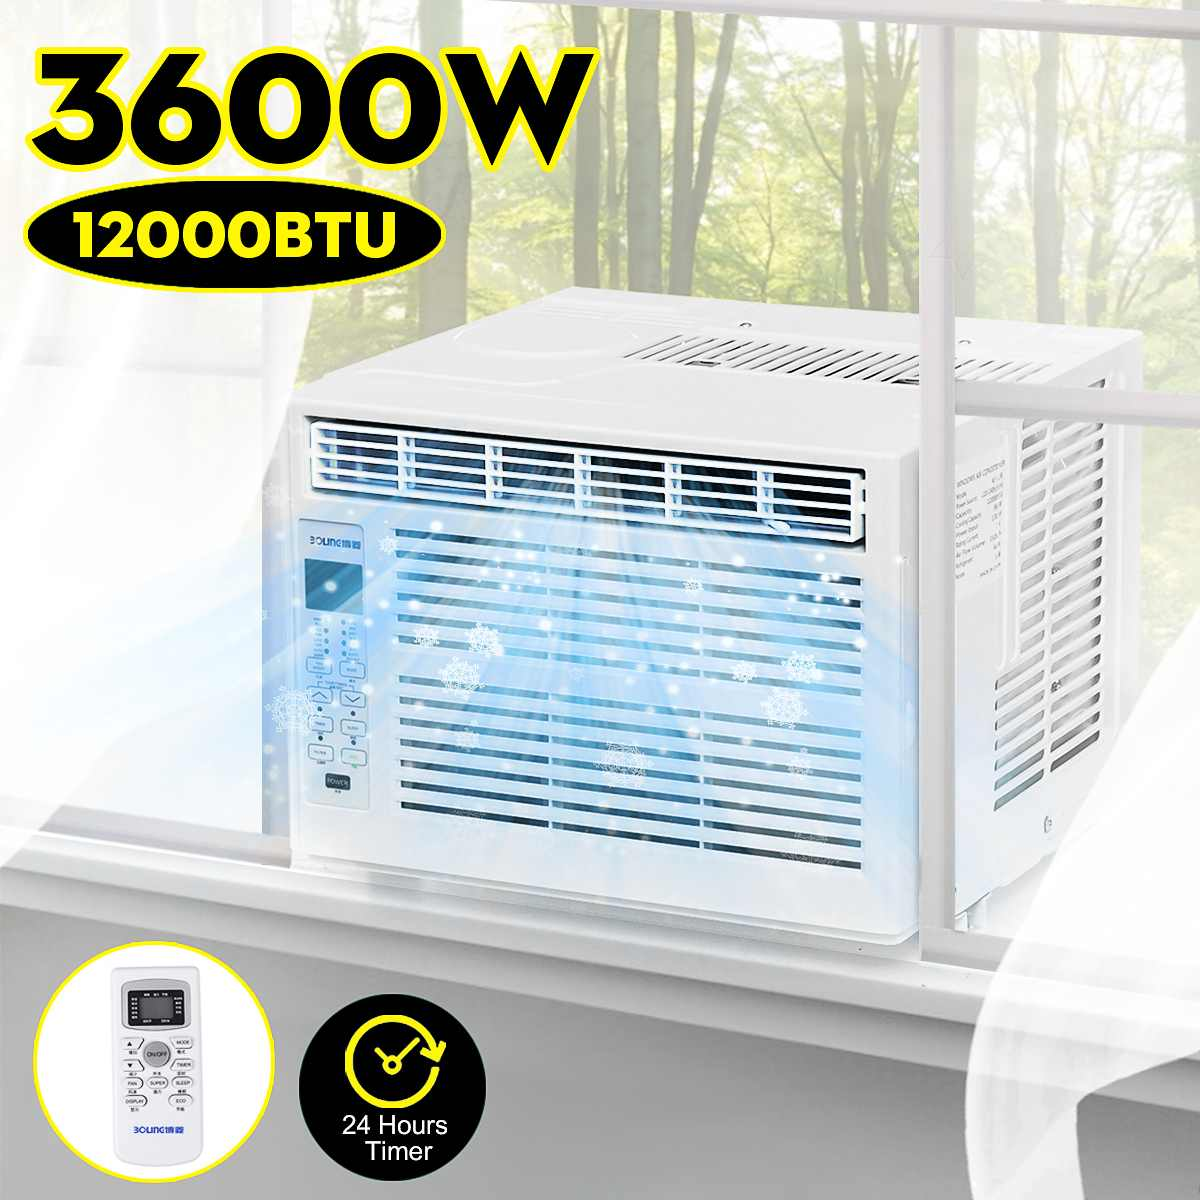 3600W Desktop Air Conditioner AC220-240V Cold Use With Remote Control LED Control Panel 12000BTU24-hour Timer Pet Air Conditione